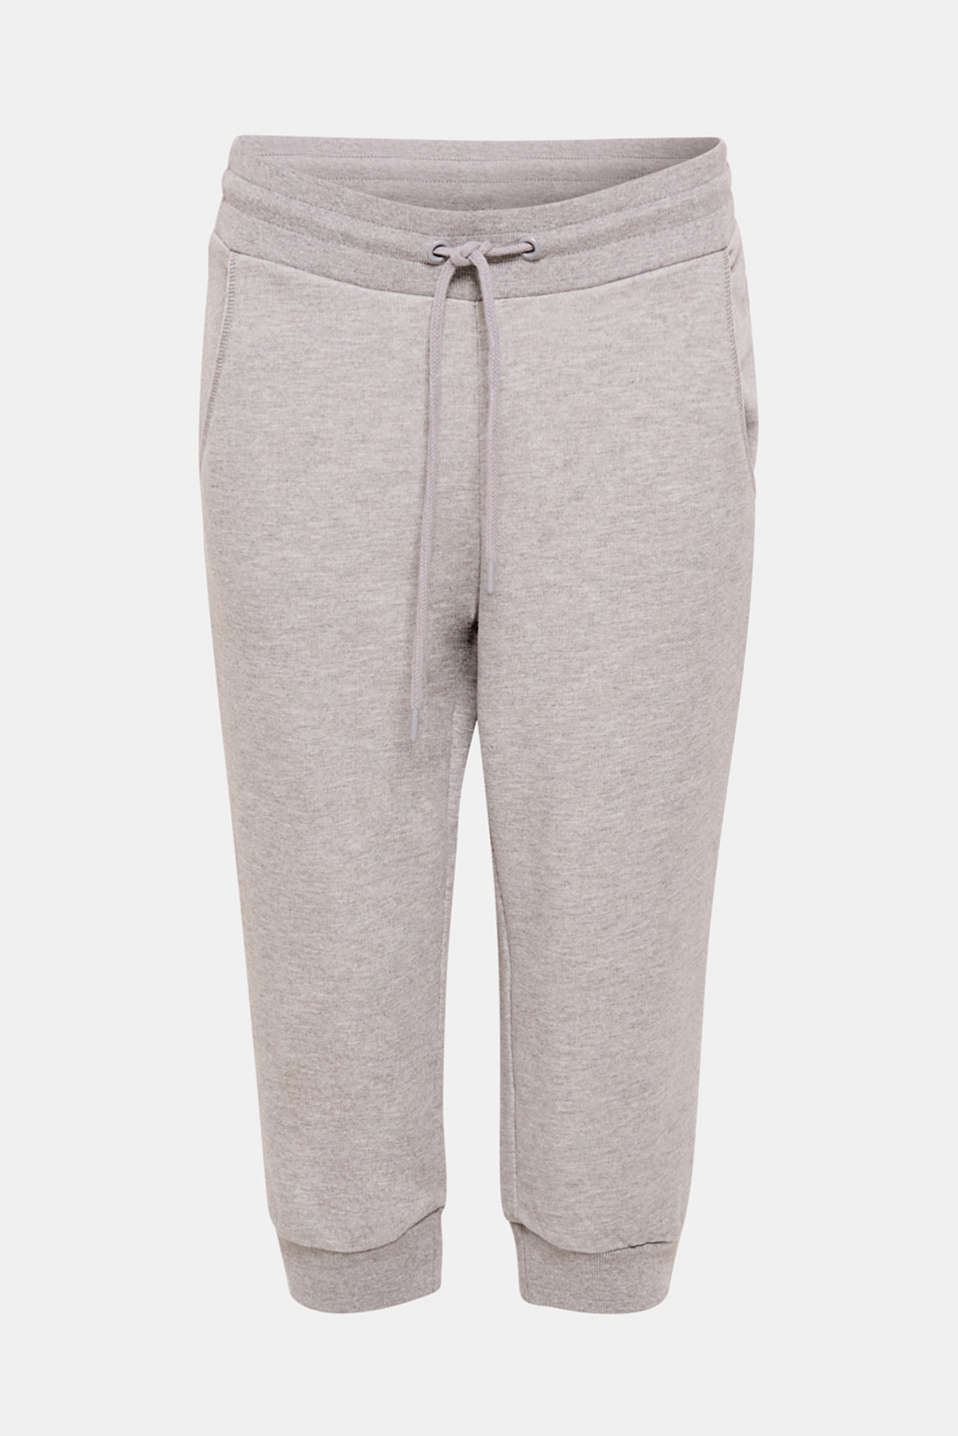 A favourite for free time and sports: these capris in lightweight sweatshirt fabric with comfortable ribbed trims are airy, casual and cosy!